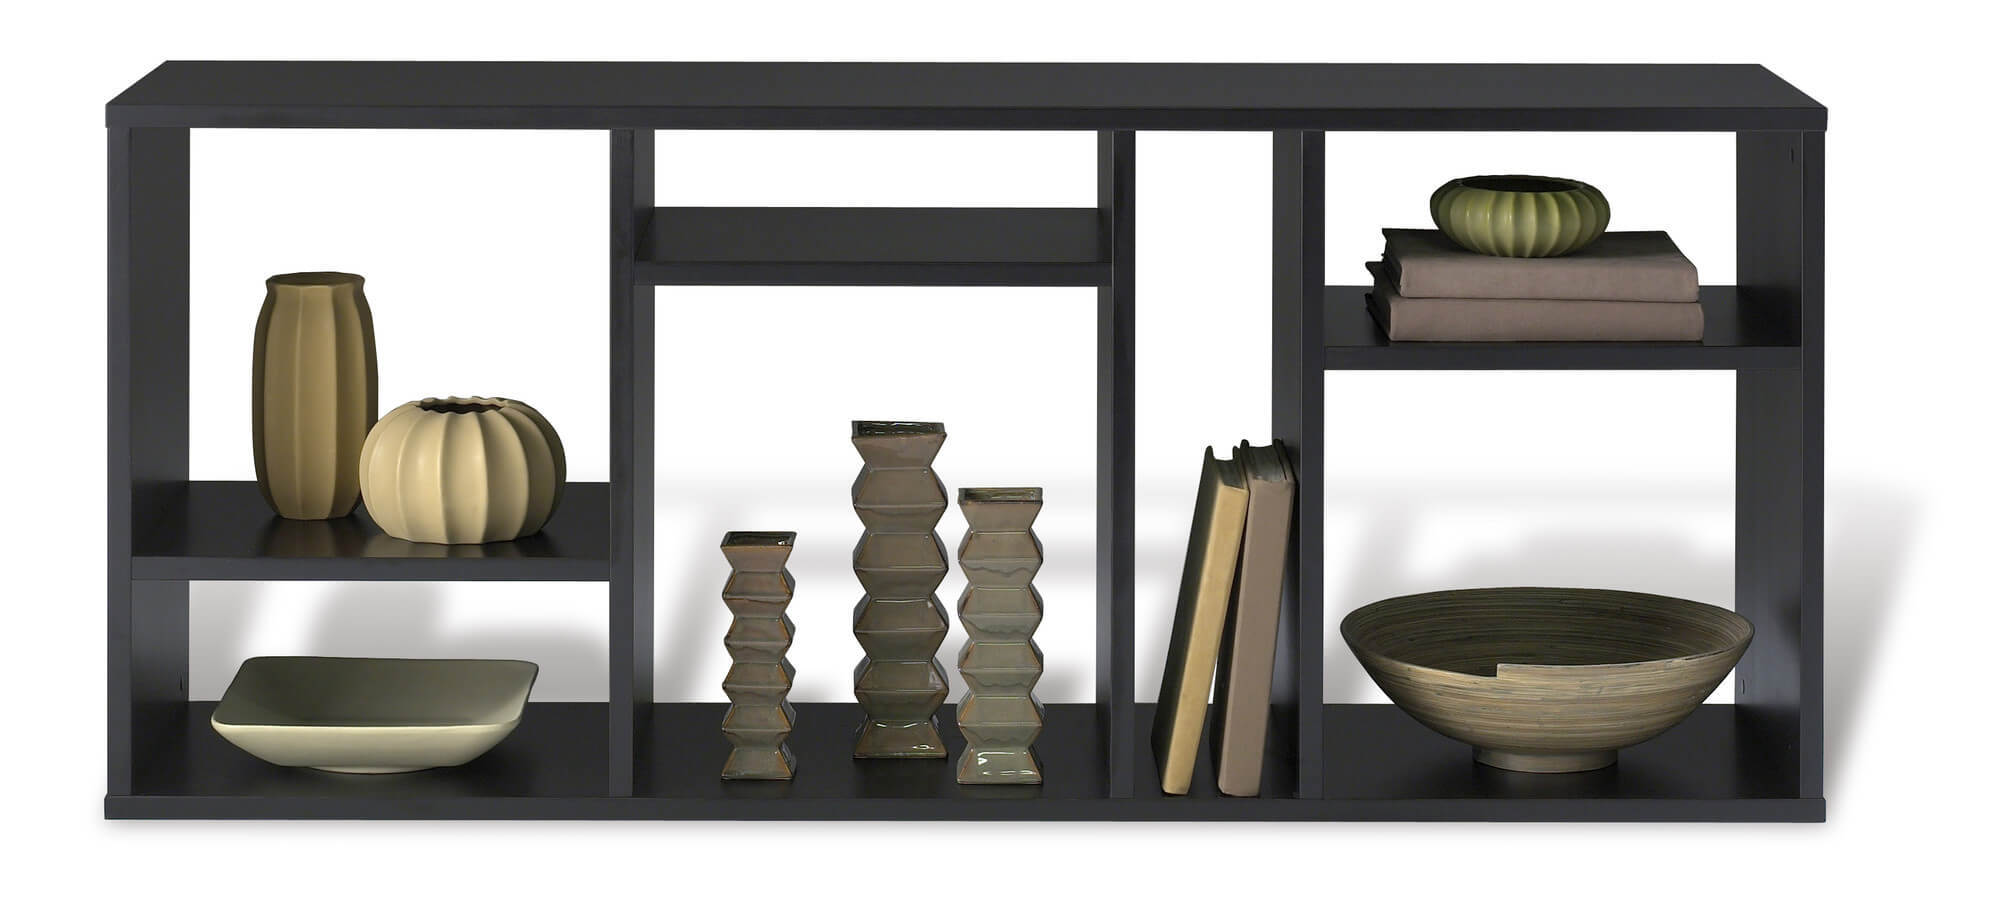 15 6-Cube Bookcases, Shelves and Storage Options - Home Stratosphere